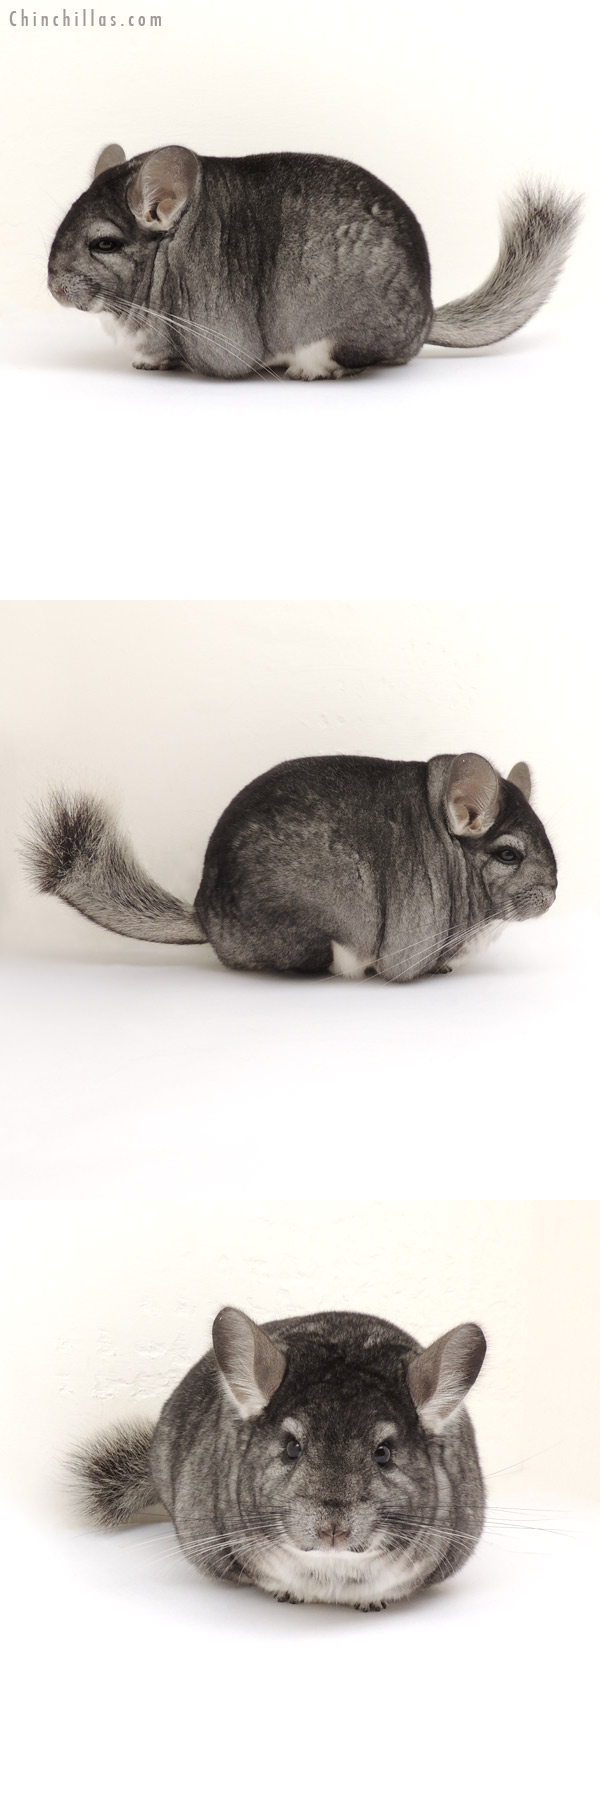 13284 Large Blocky Premium Production Quality Standard Female Chinchilla